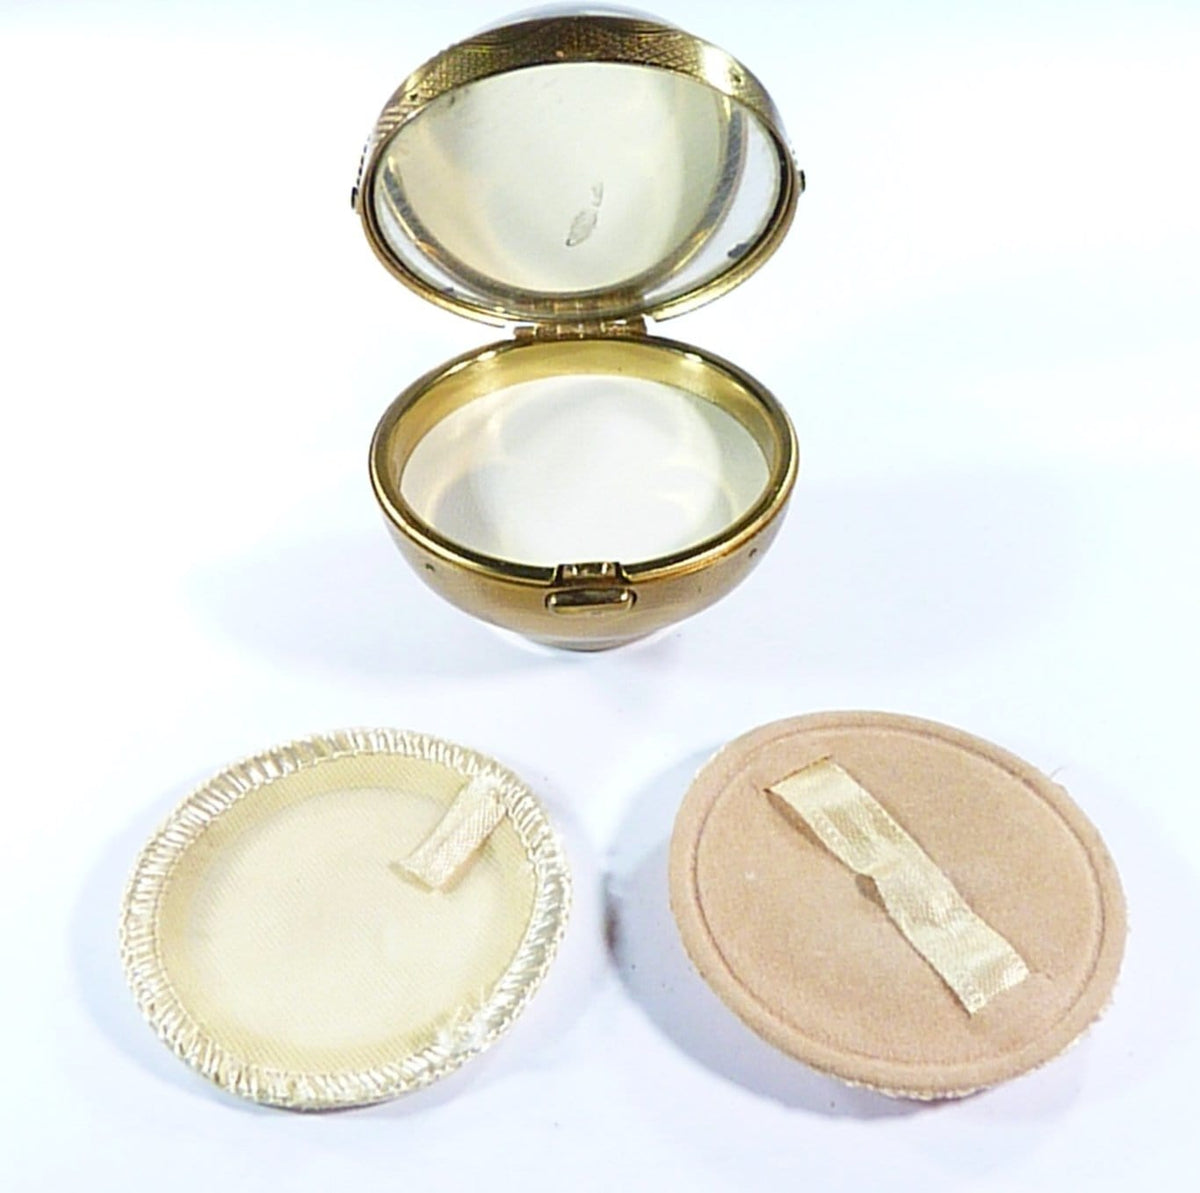 Unused 1950s Loose Powder Compacts